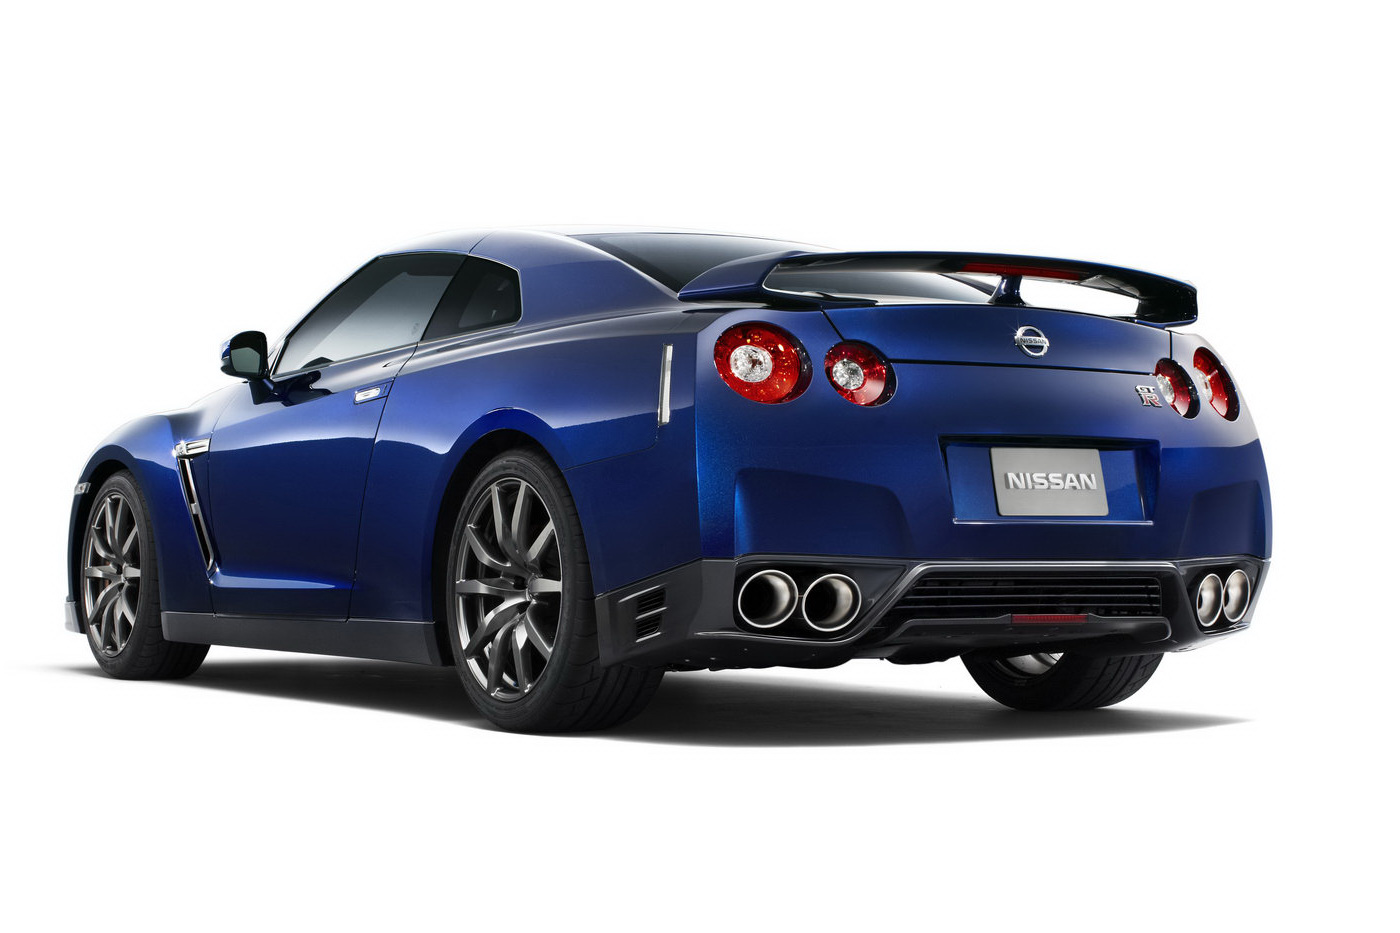 2012 nissan gt-r review - top speed